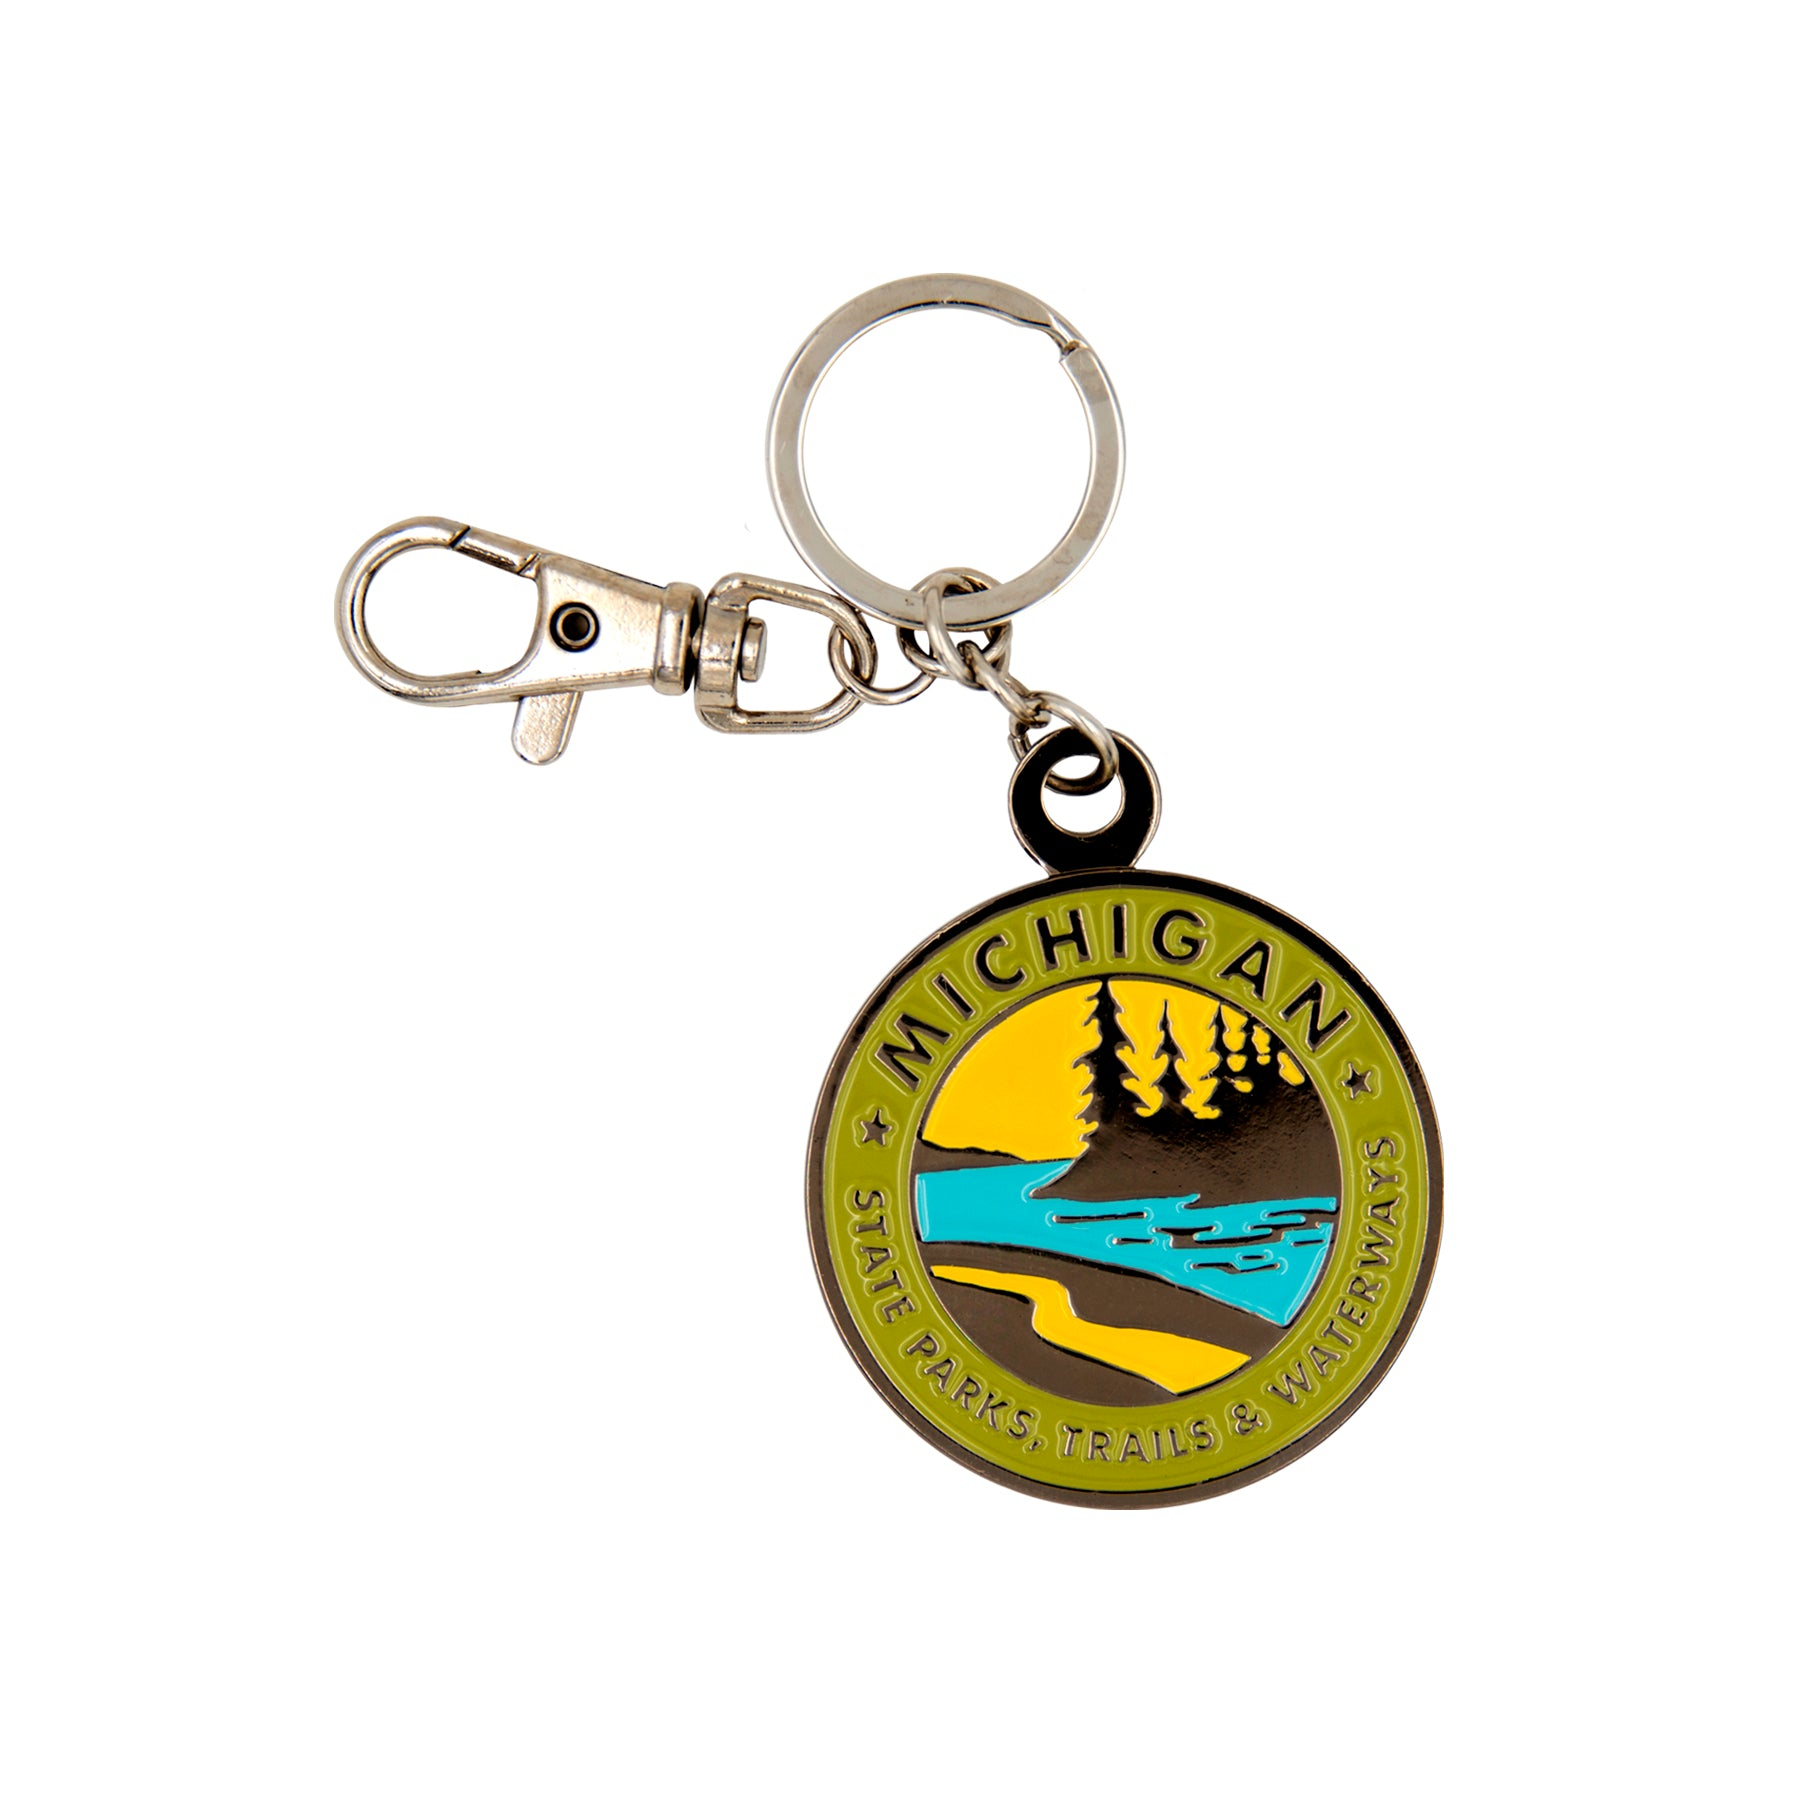 Parks Trails Waterways Michigan Keychain